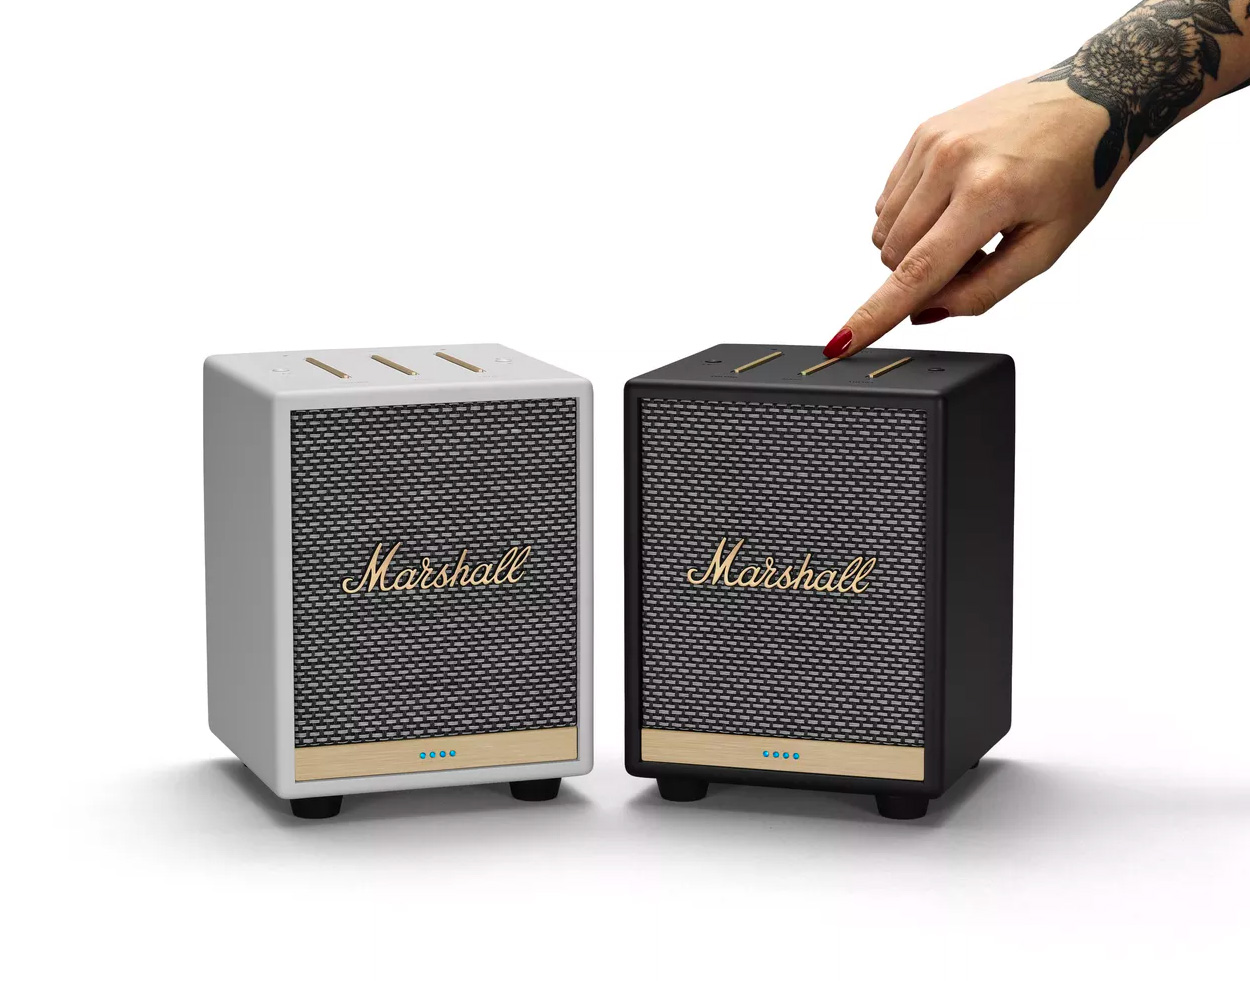 Marshall Put Alexa & AirPlay2 in the Uxbridge Voice Speaker at werd.com